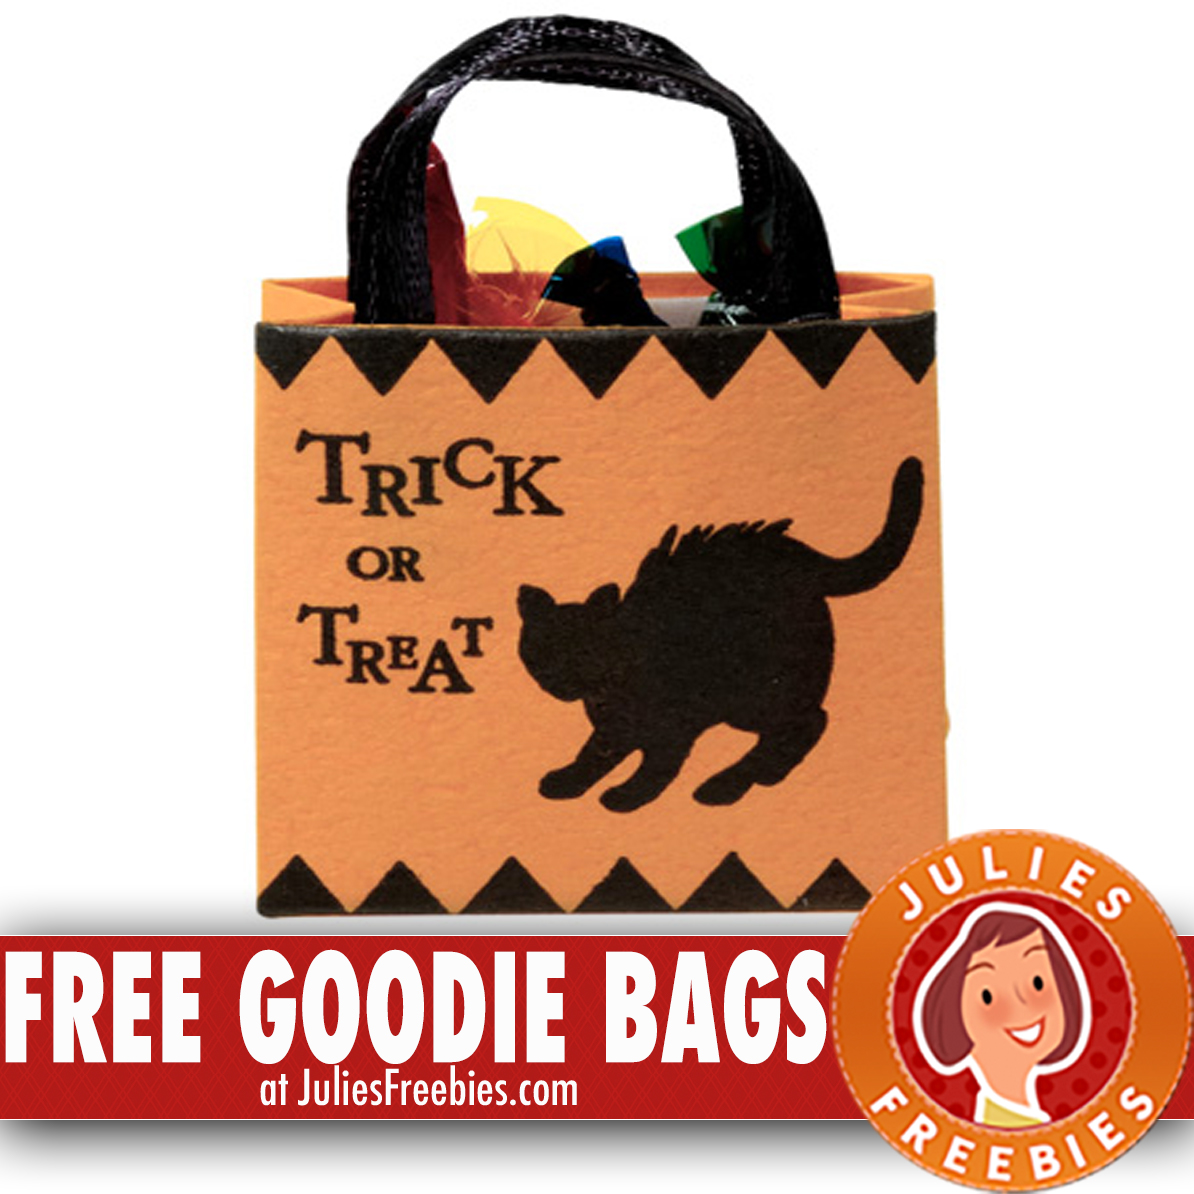 free halloween goodie bags at shoney's - today only - julie's freebies